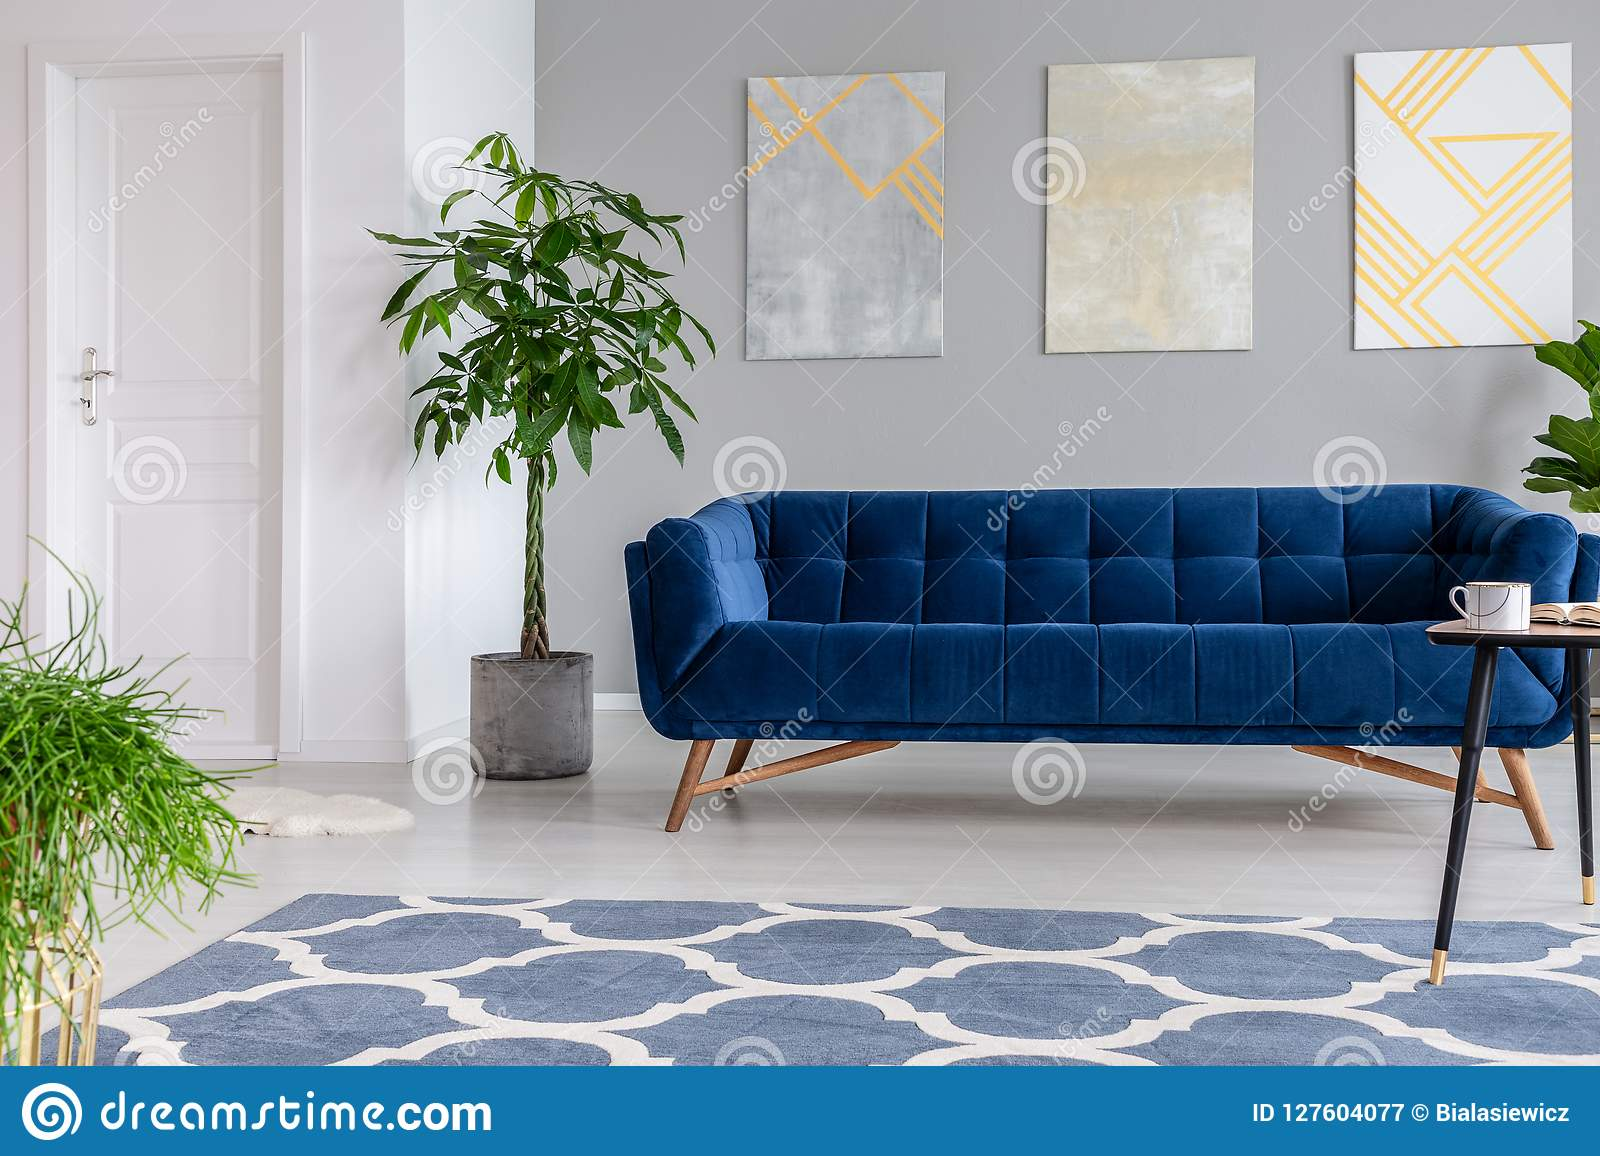 Graphic Paintings On A Gray Wall Behind A Luxuries Velvet Dark Blue Couch In An Elegant Living Room Interior With Gold Accents Re Stock Image Image Of Furniture Relax 127604077